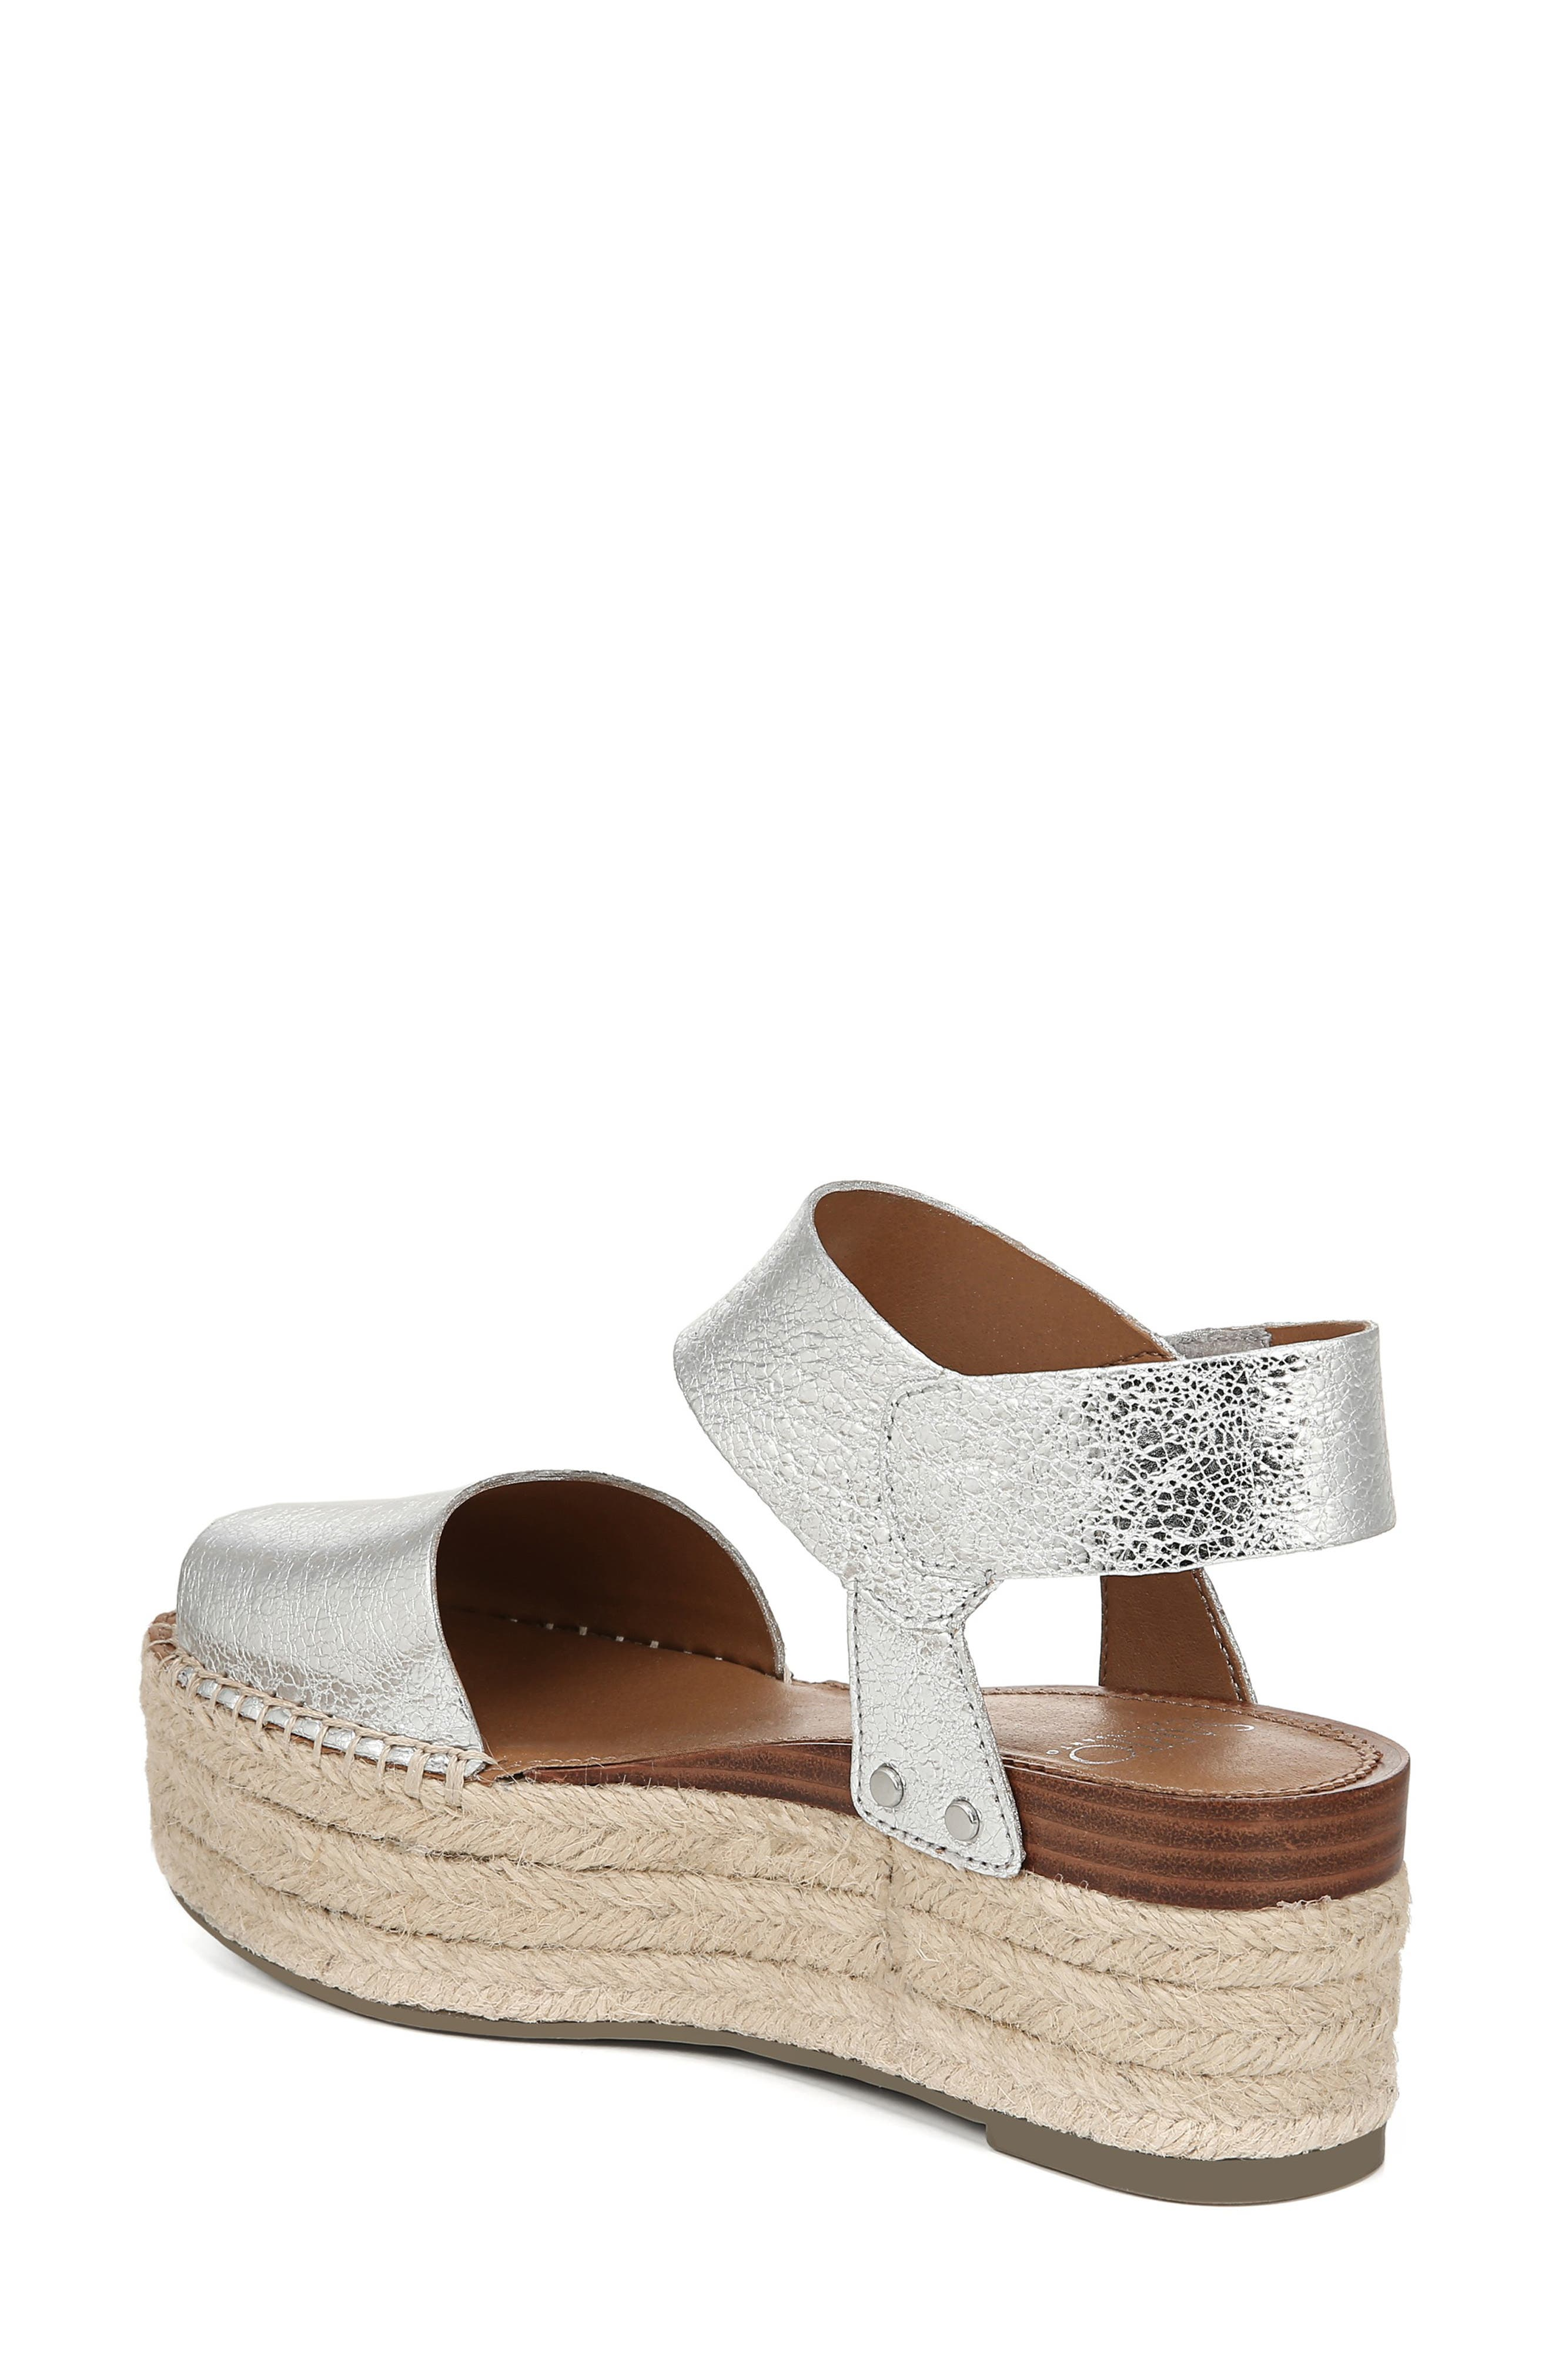 SARTO BY FRANCO SARTO, Leo Platform Espadrille Sandal, Alternate thumbnail 2, color, SILVER LEATHER